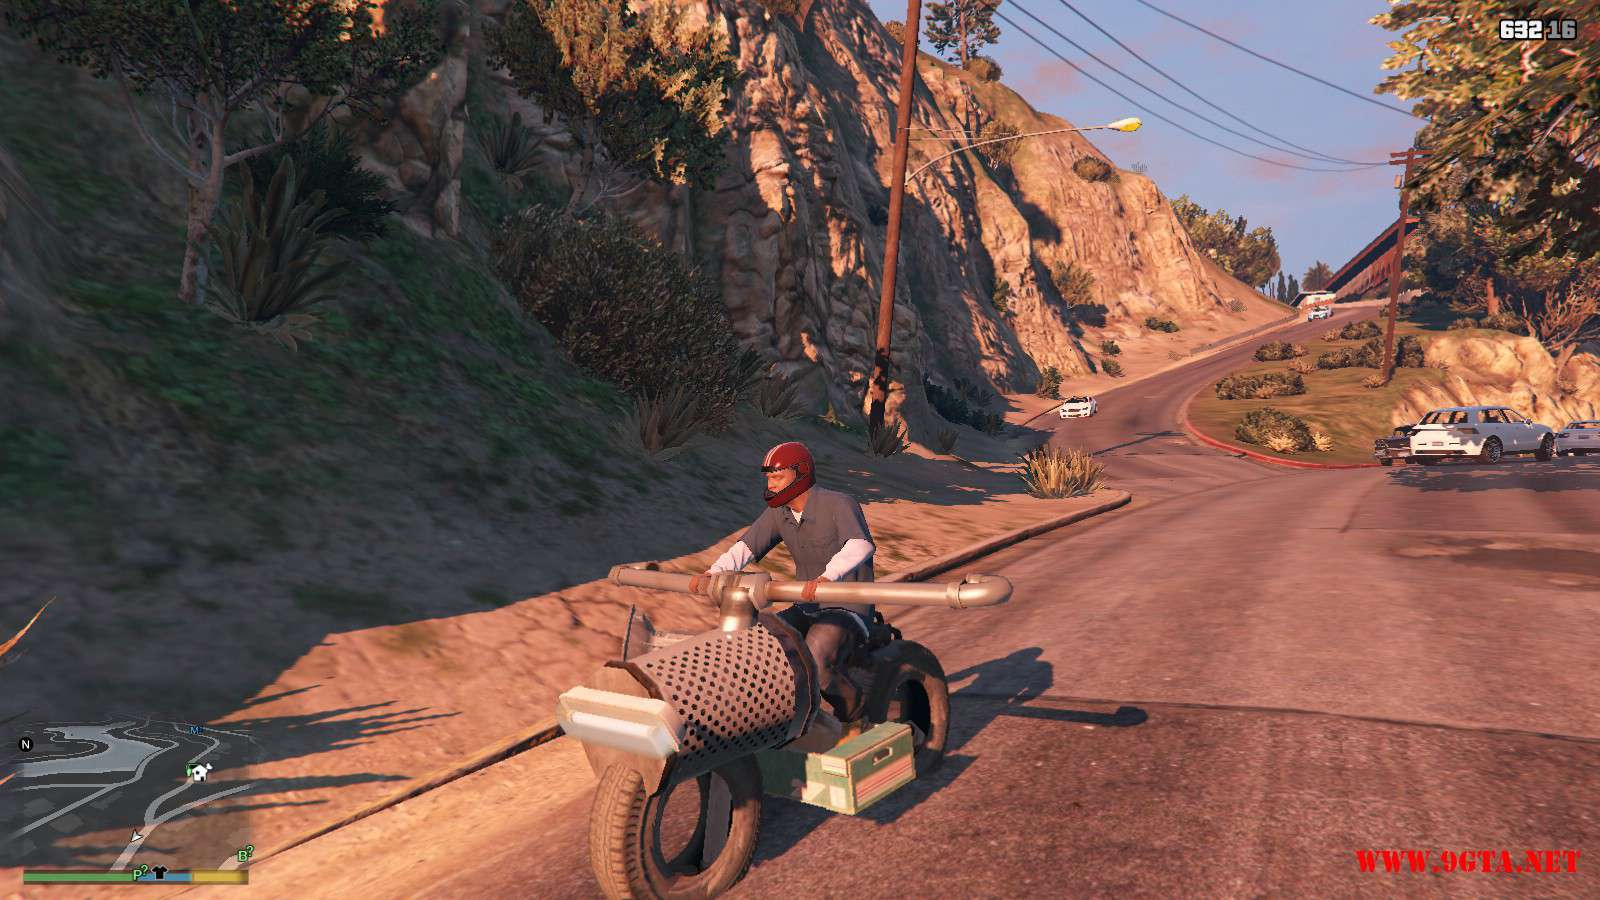 The Speed Bike GTA5 Mods (1)